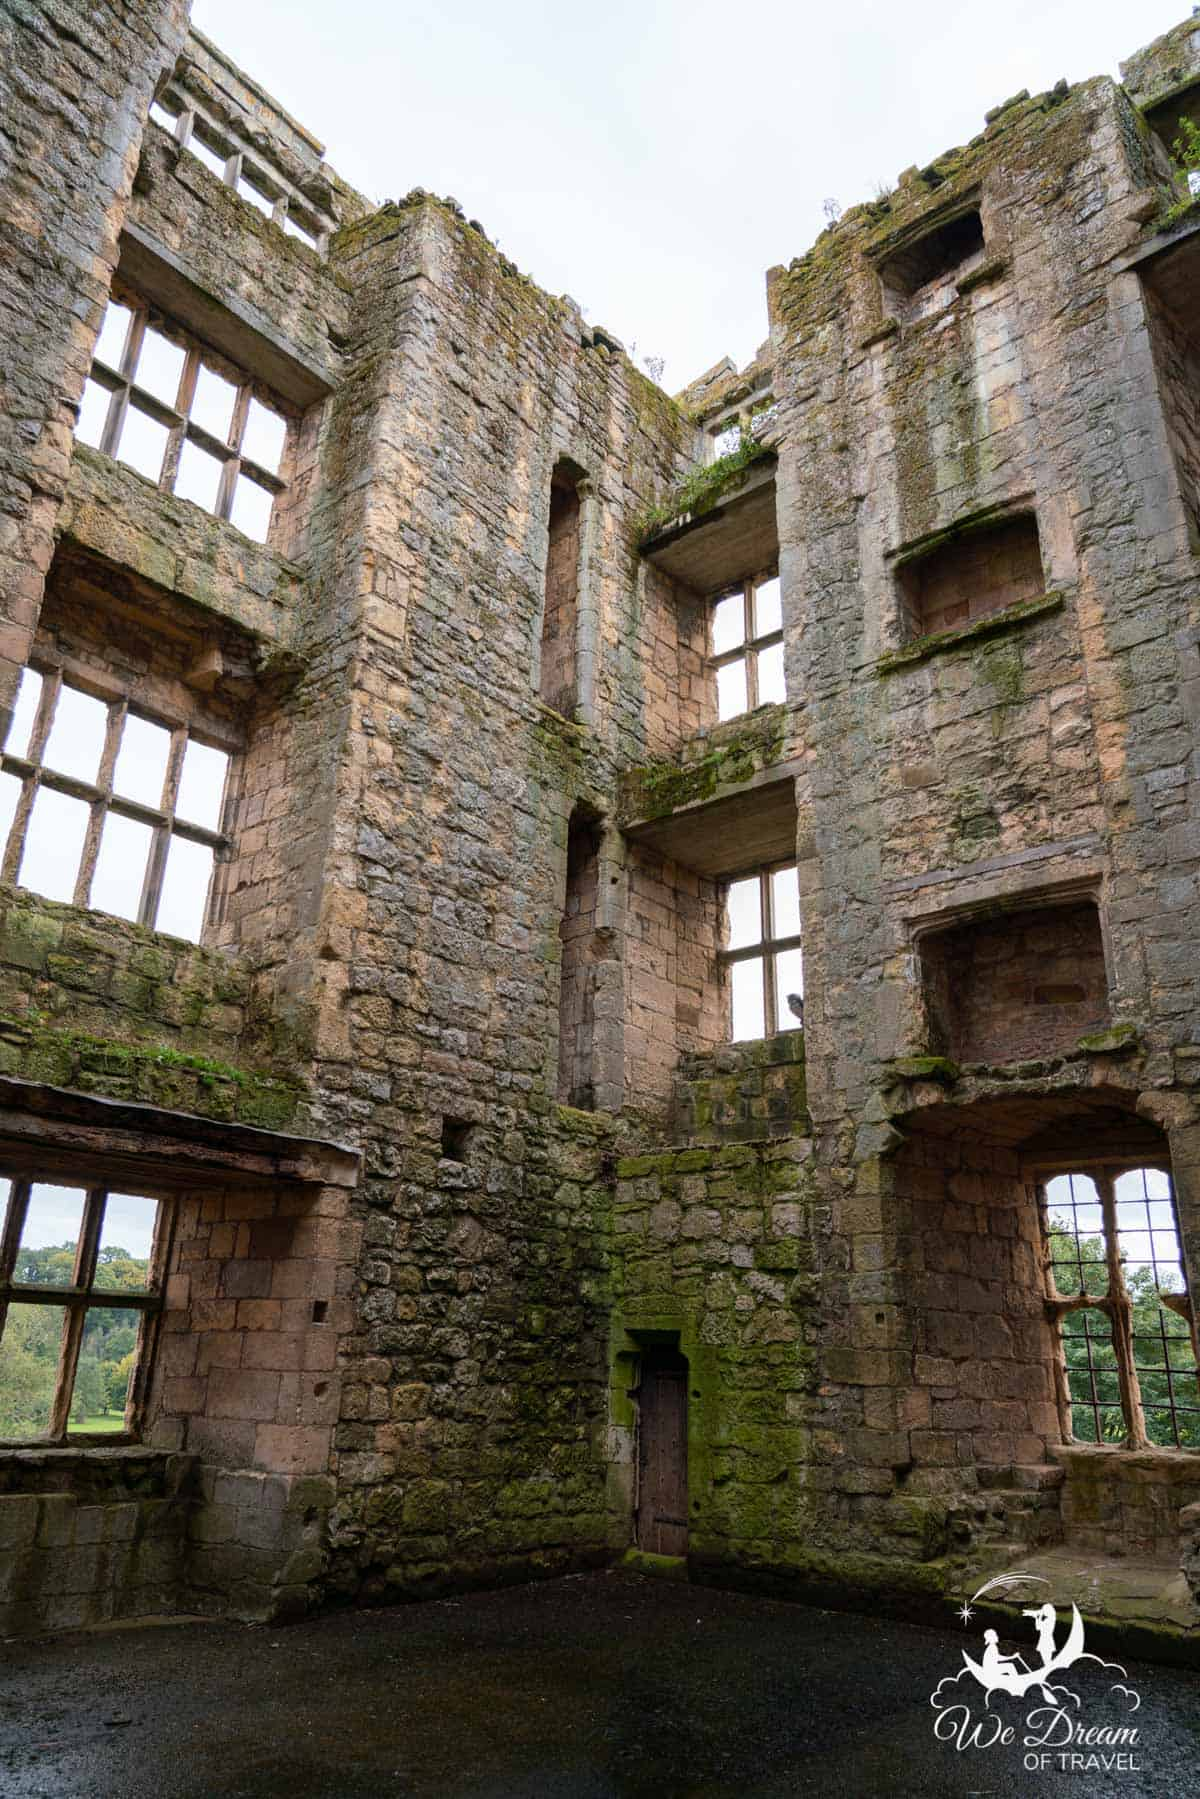 The inside of the tower of Helmsley Castle York